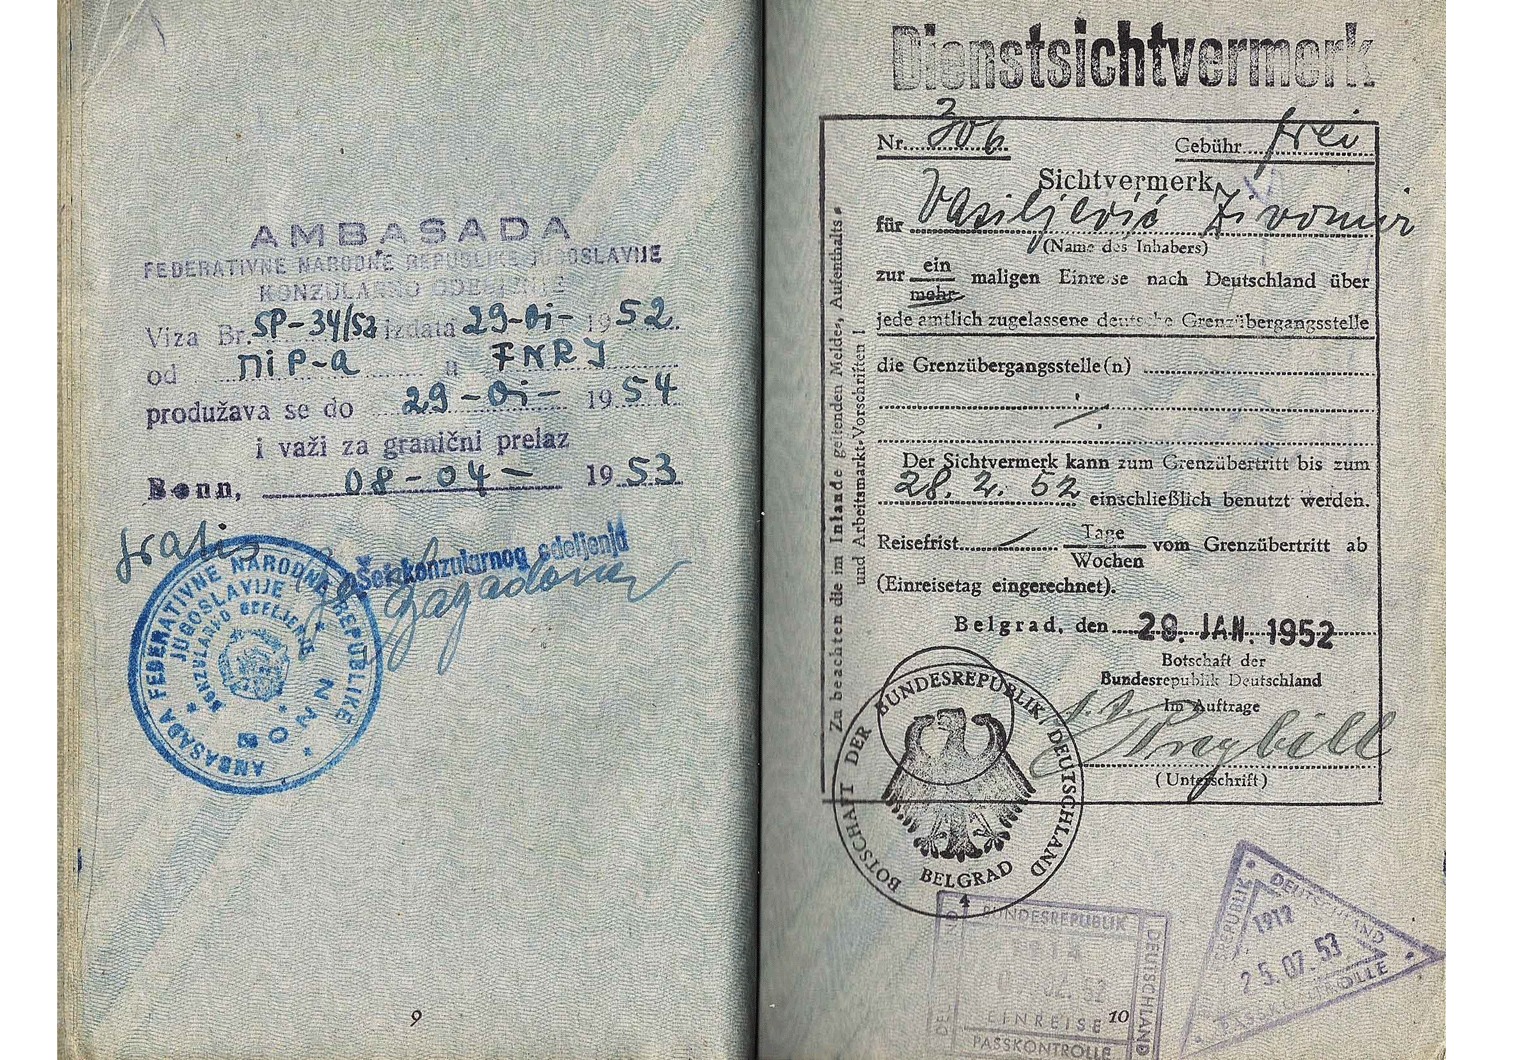 Cold-War service passport from 1952